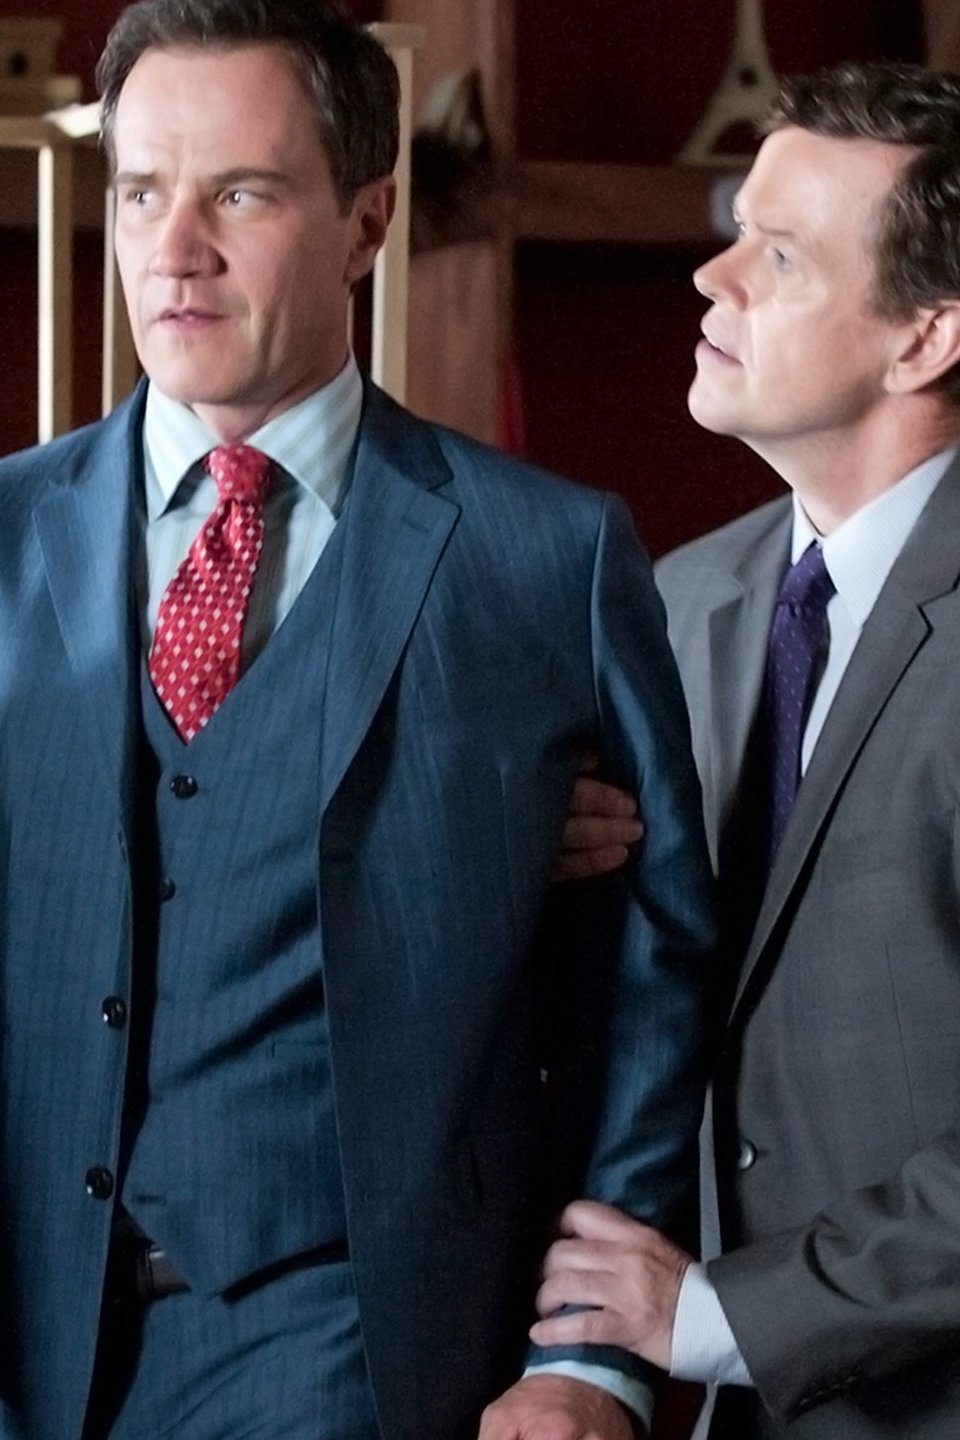 Watch White Collar - S3:E12 Upper West Side Story (2012